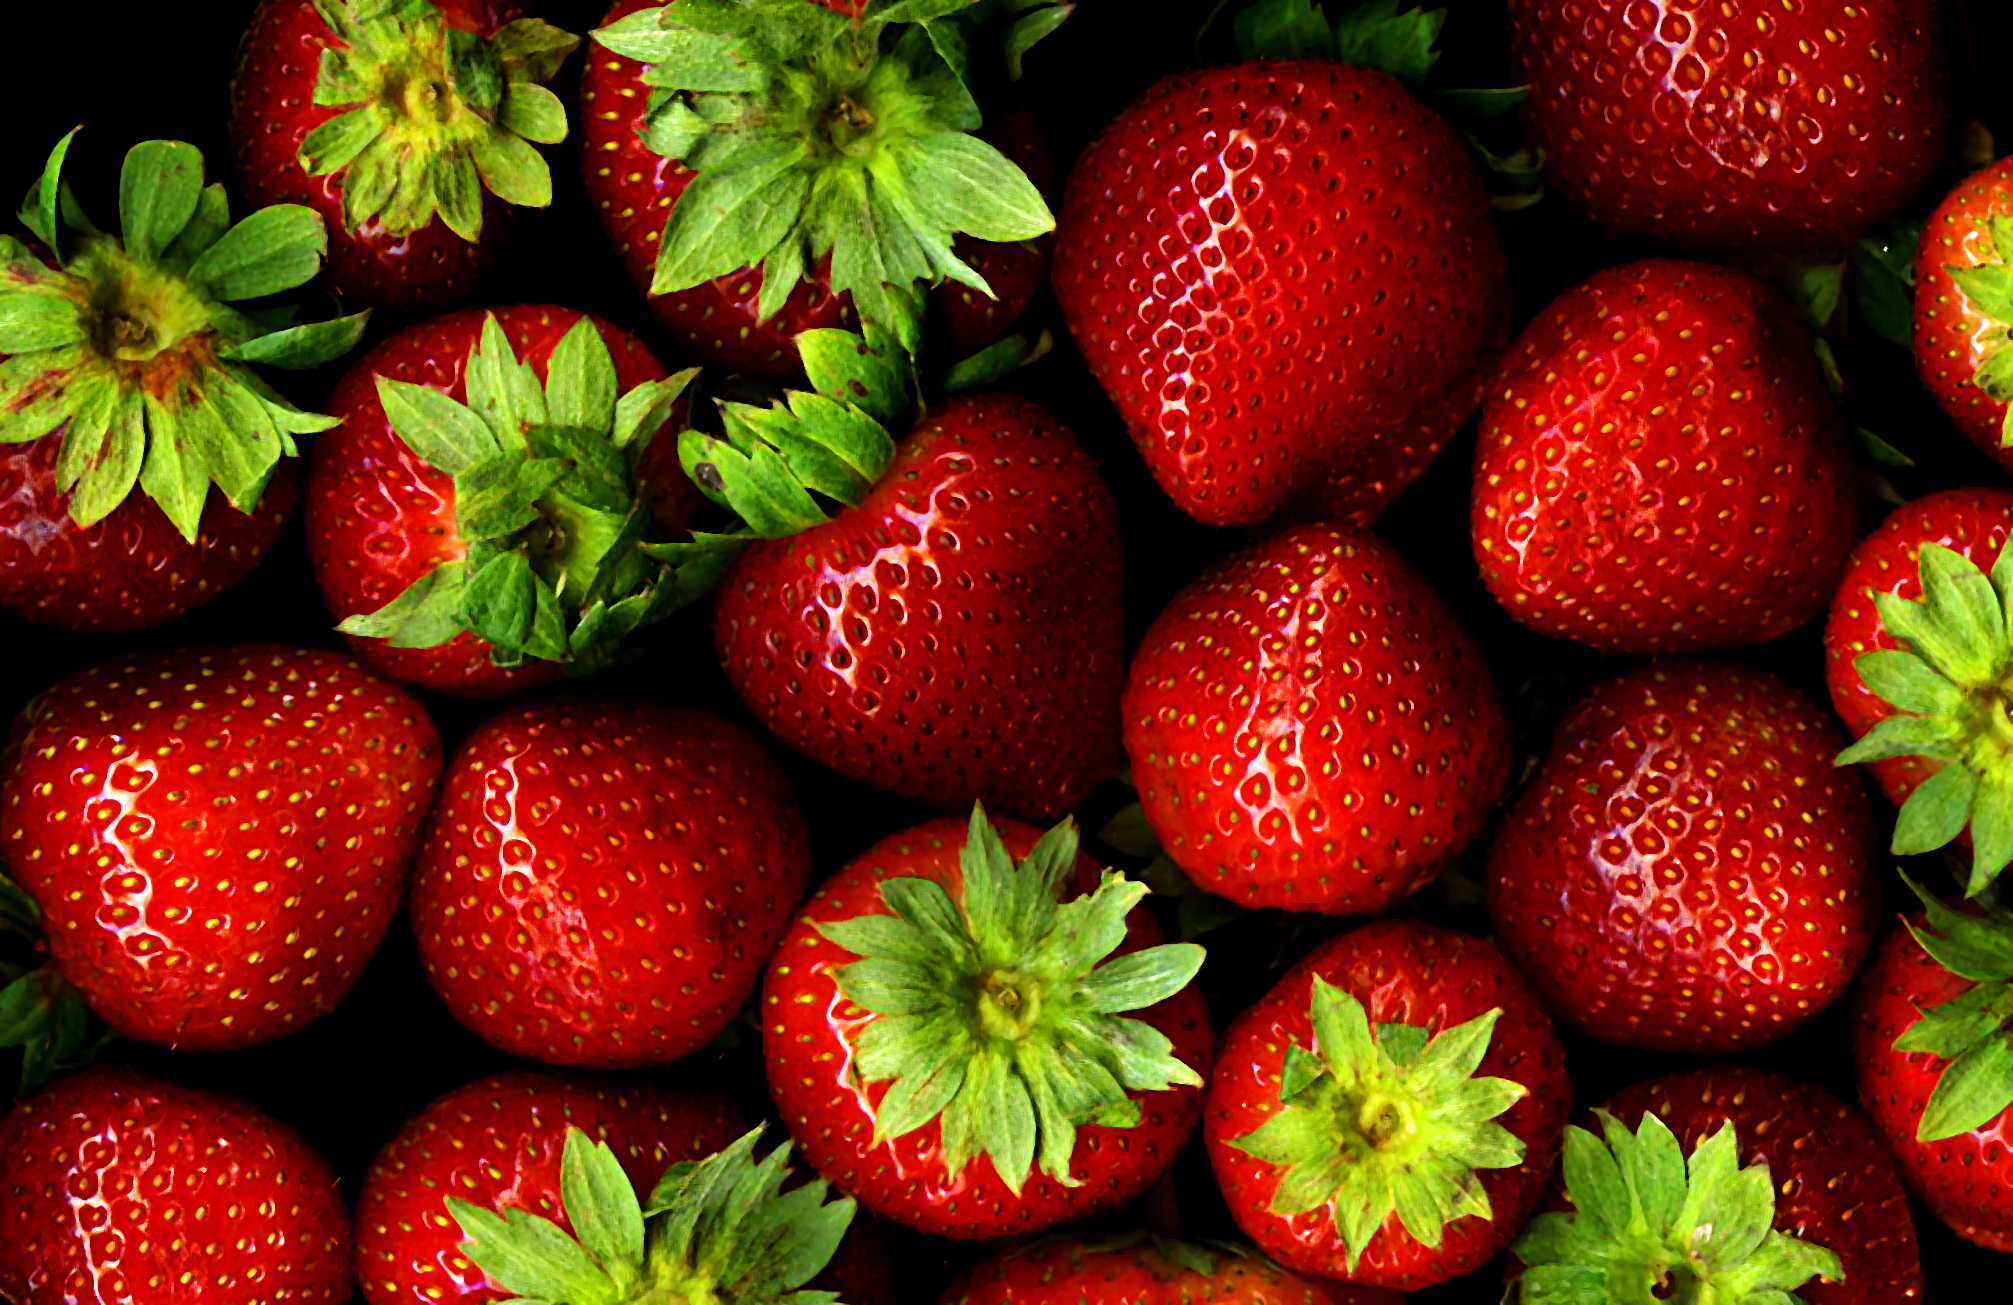 Strawberries by *clairity* on everystockphoto via Flickr